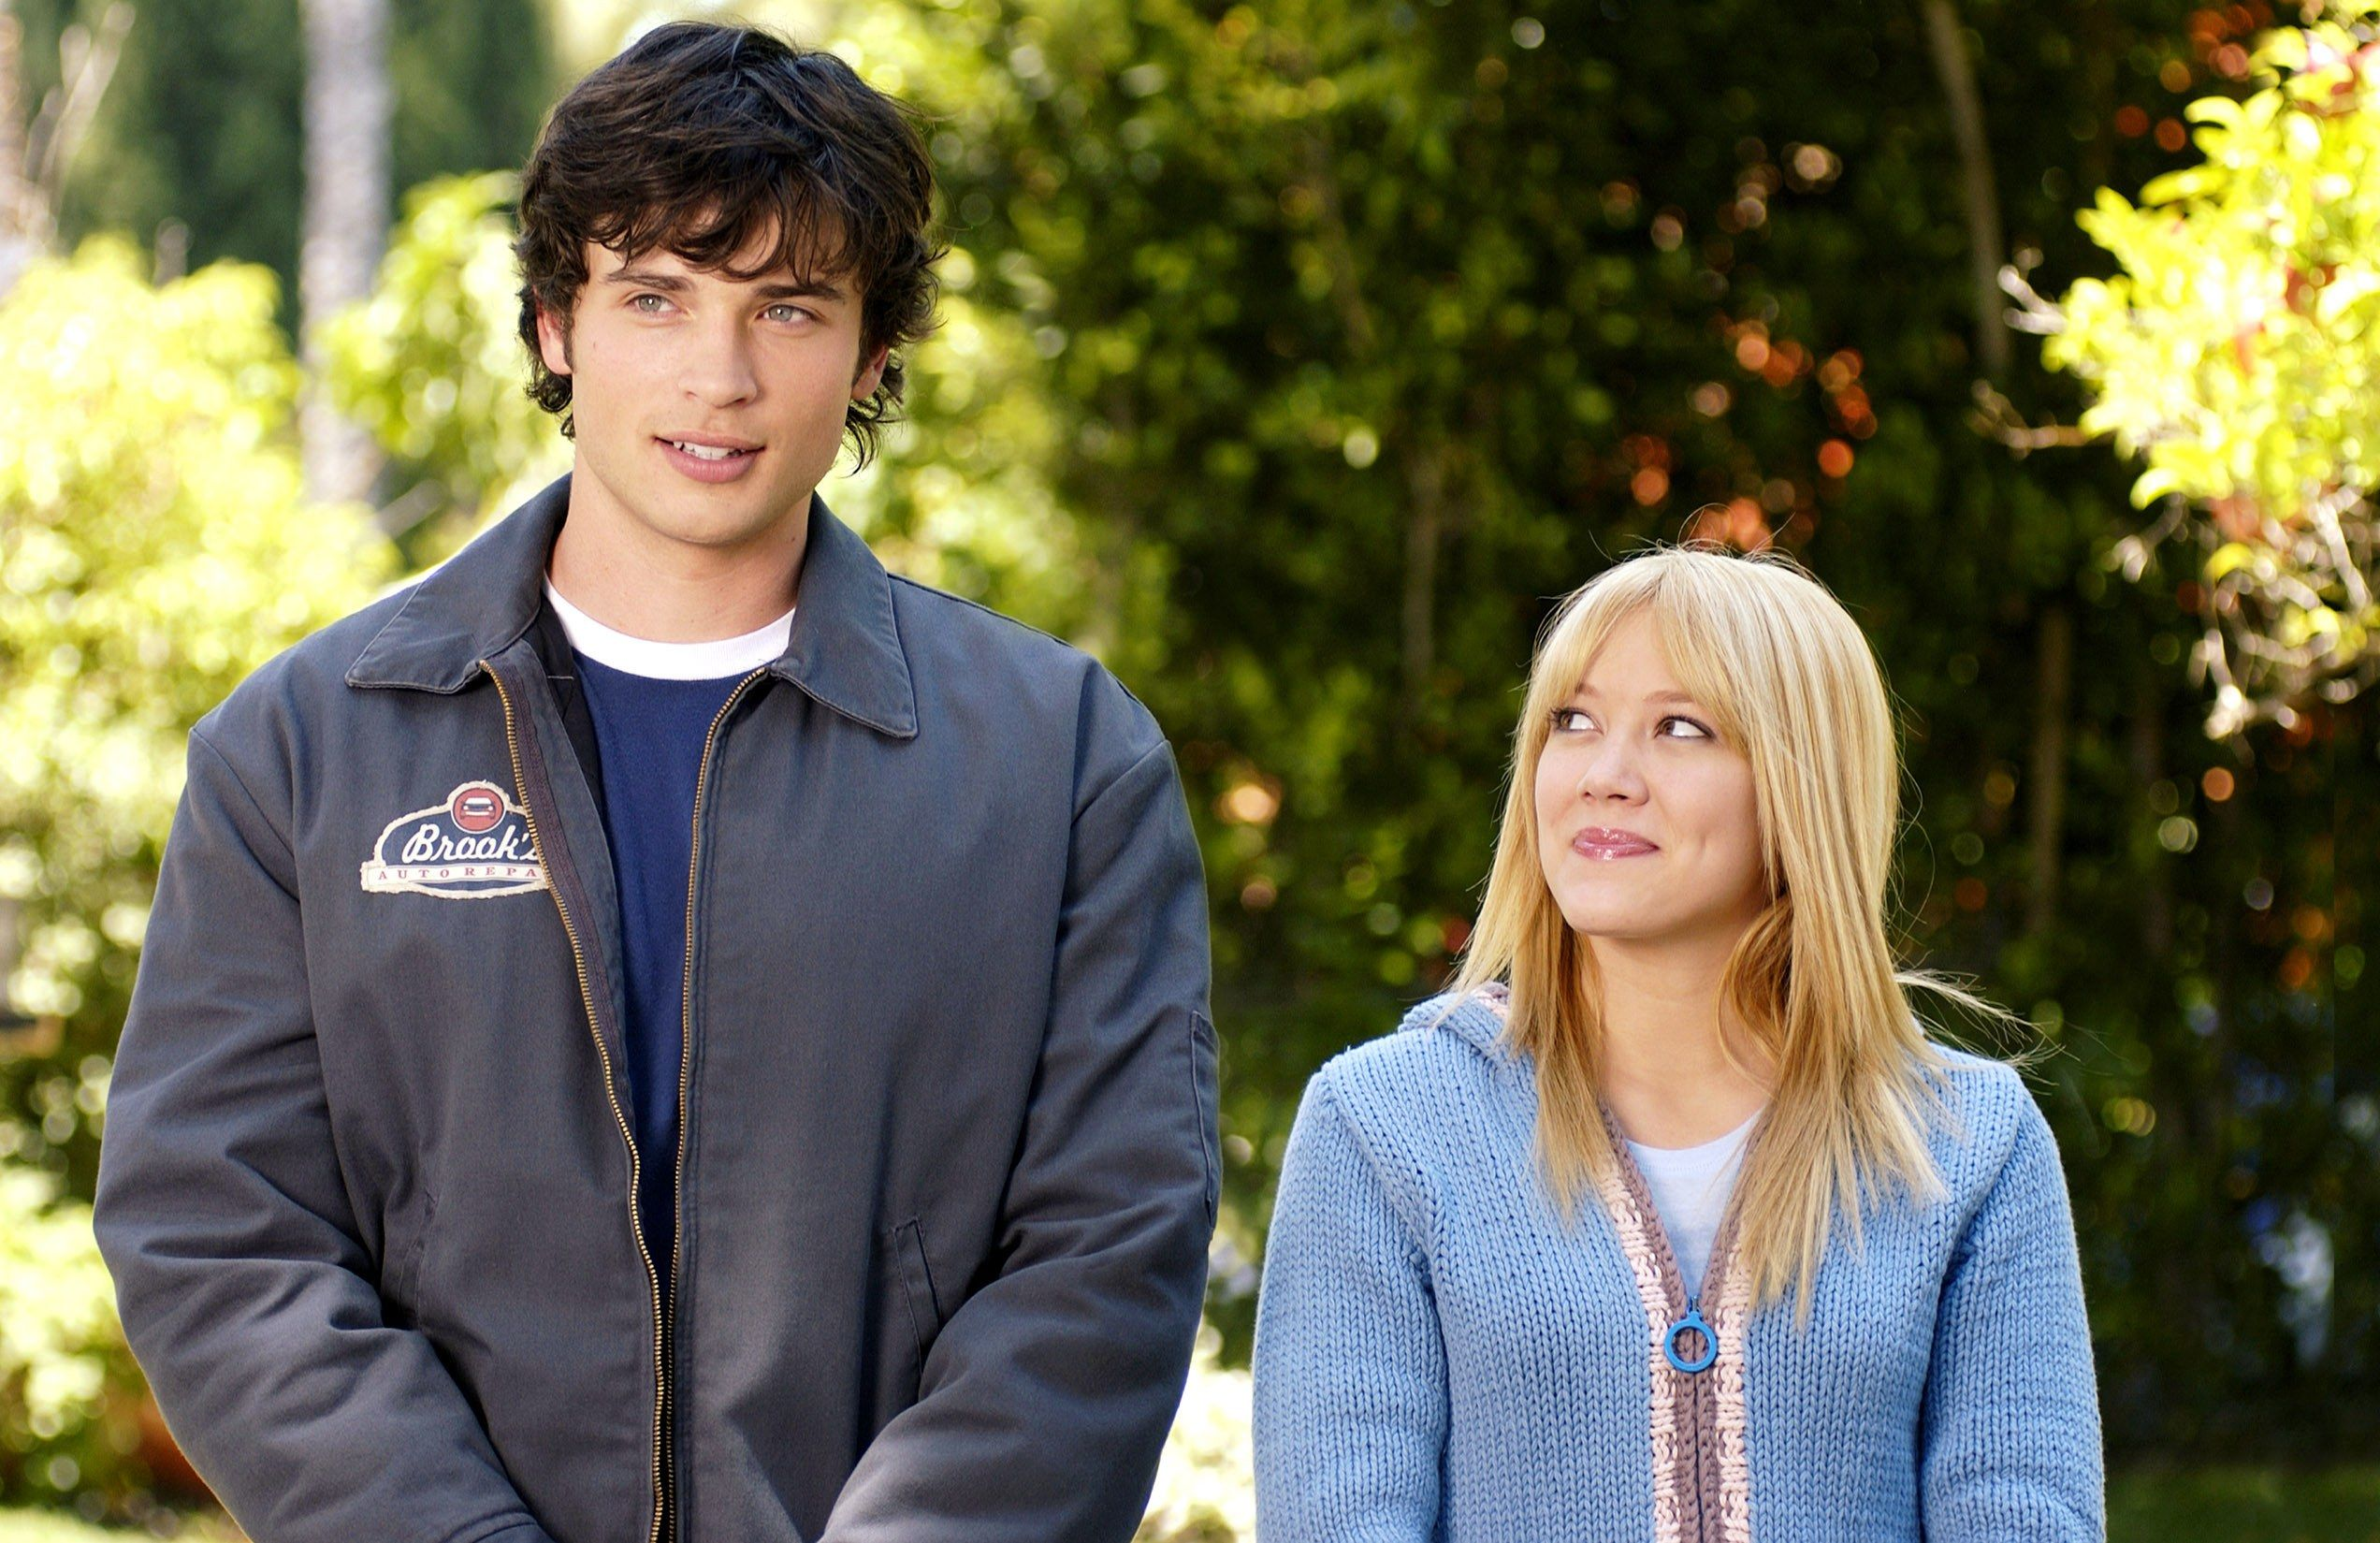 It's a yes IF Hilary Duff is in the remake of 'Cheaper by the Dozen'.